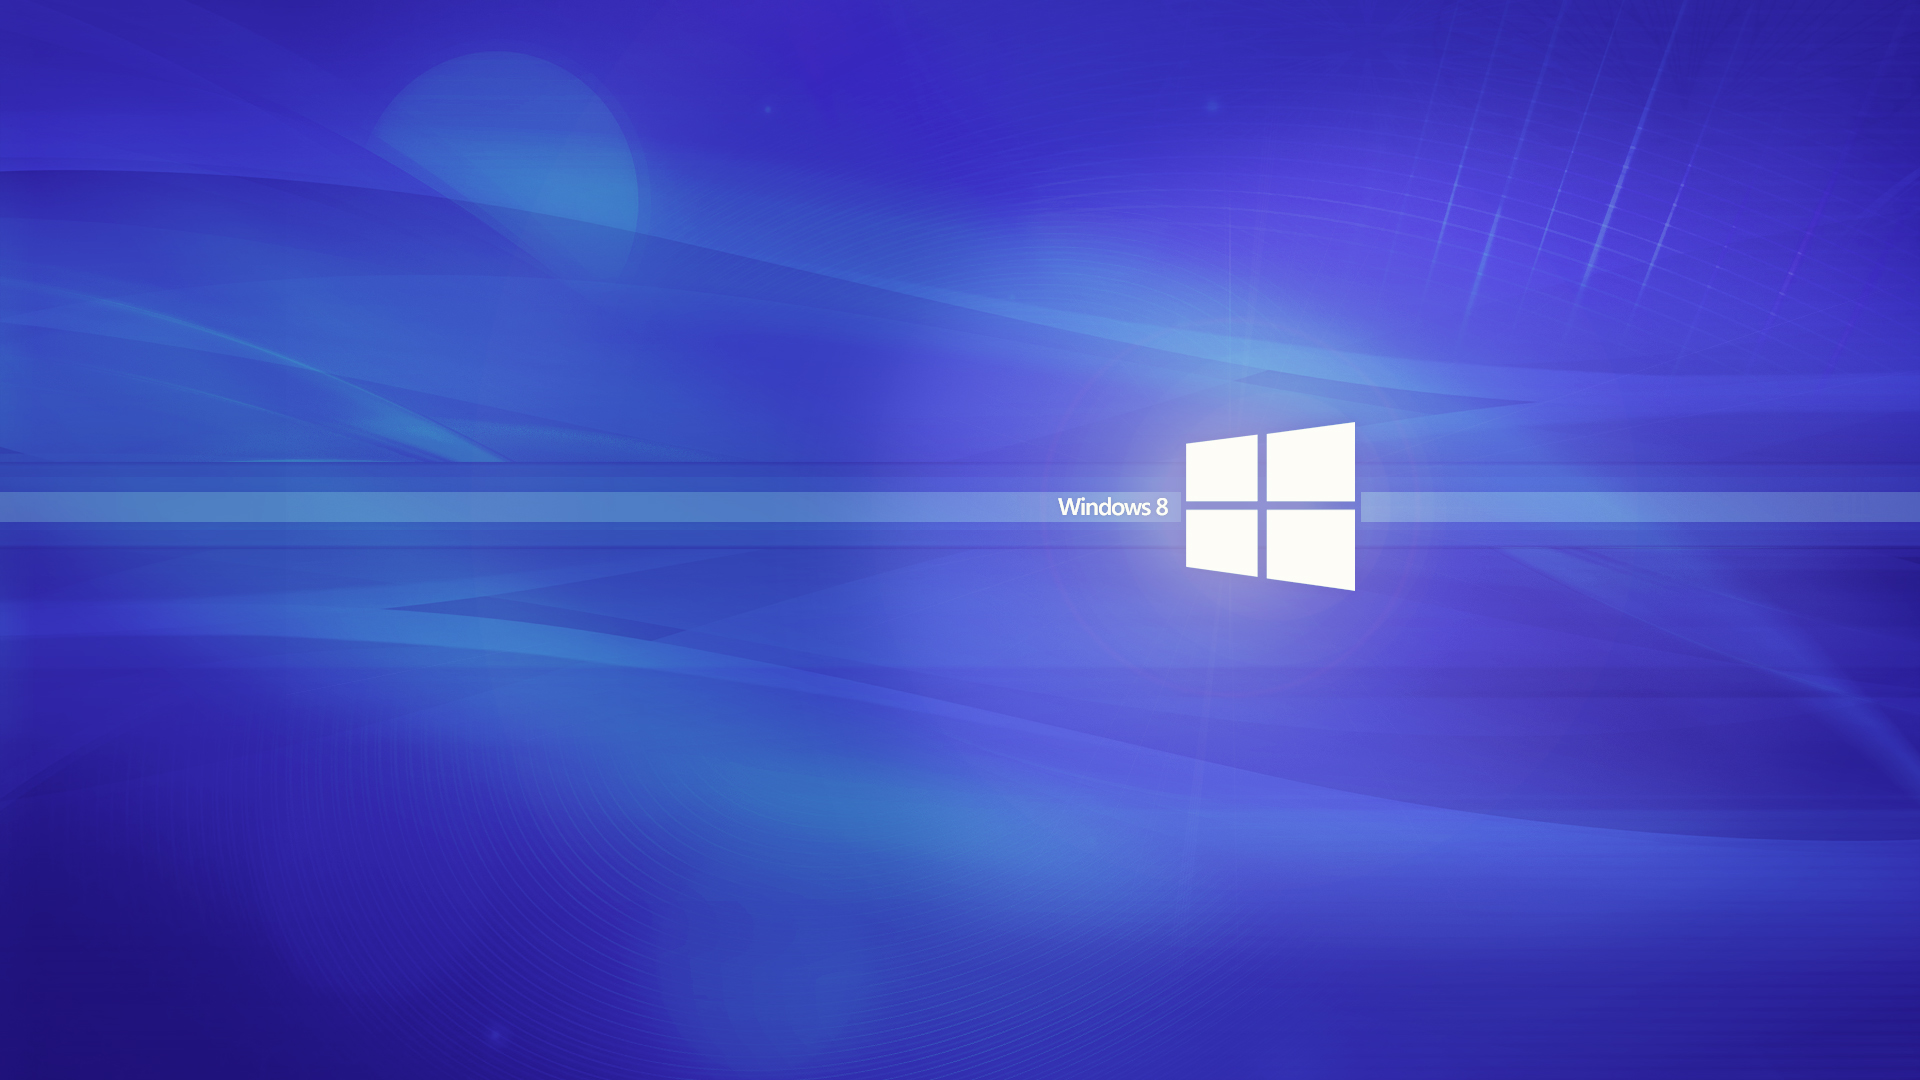 55 windows 8 wallpapers in hd for free download for Window background